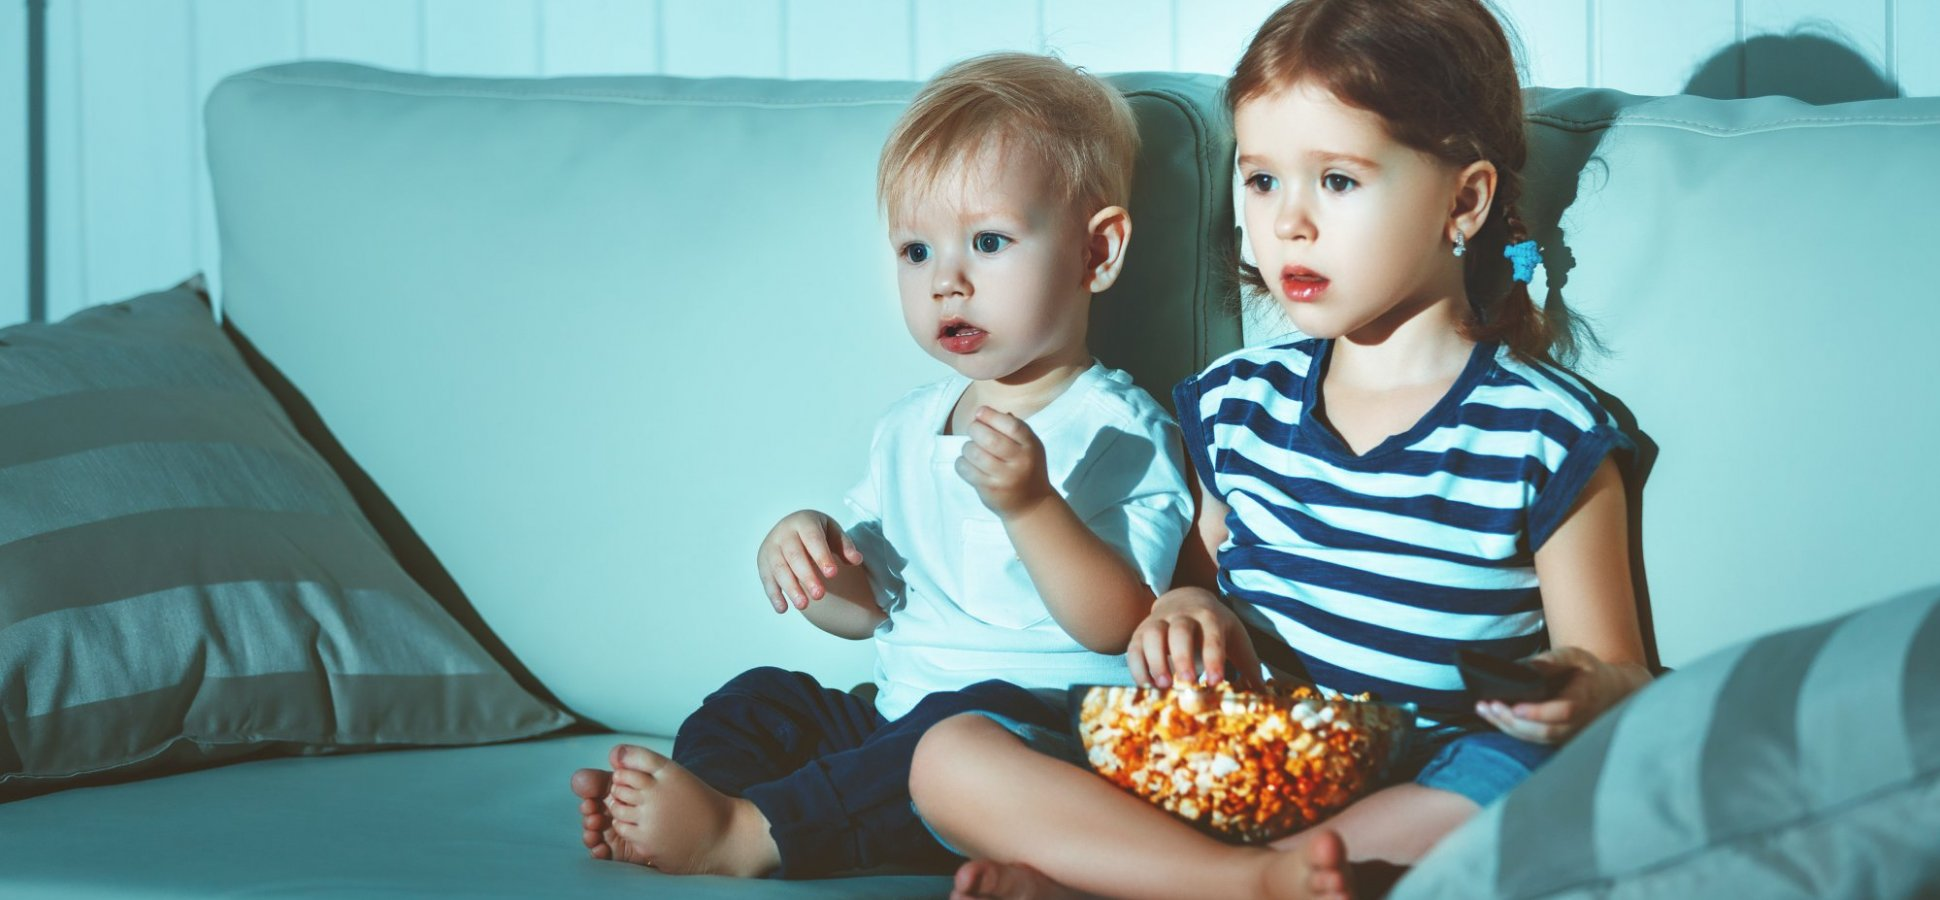 New Study of 20,000 Families Says Screen Time Is Totally Fine for Kids After All